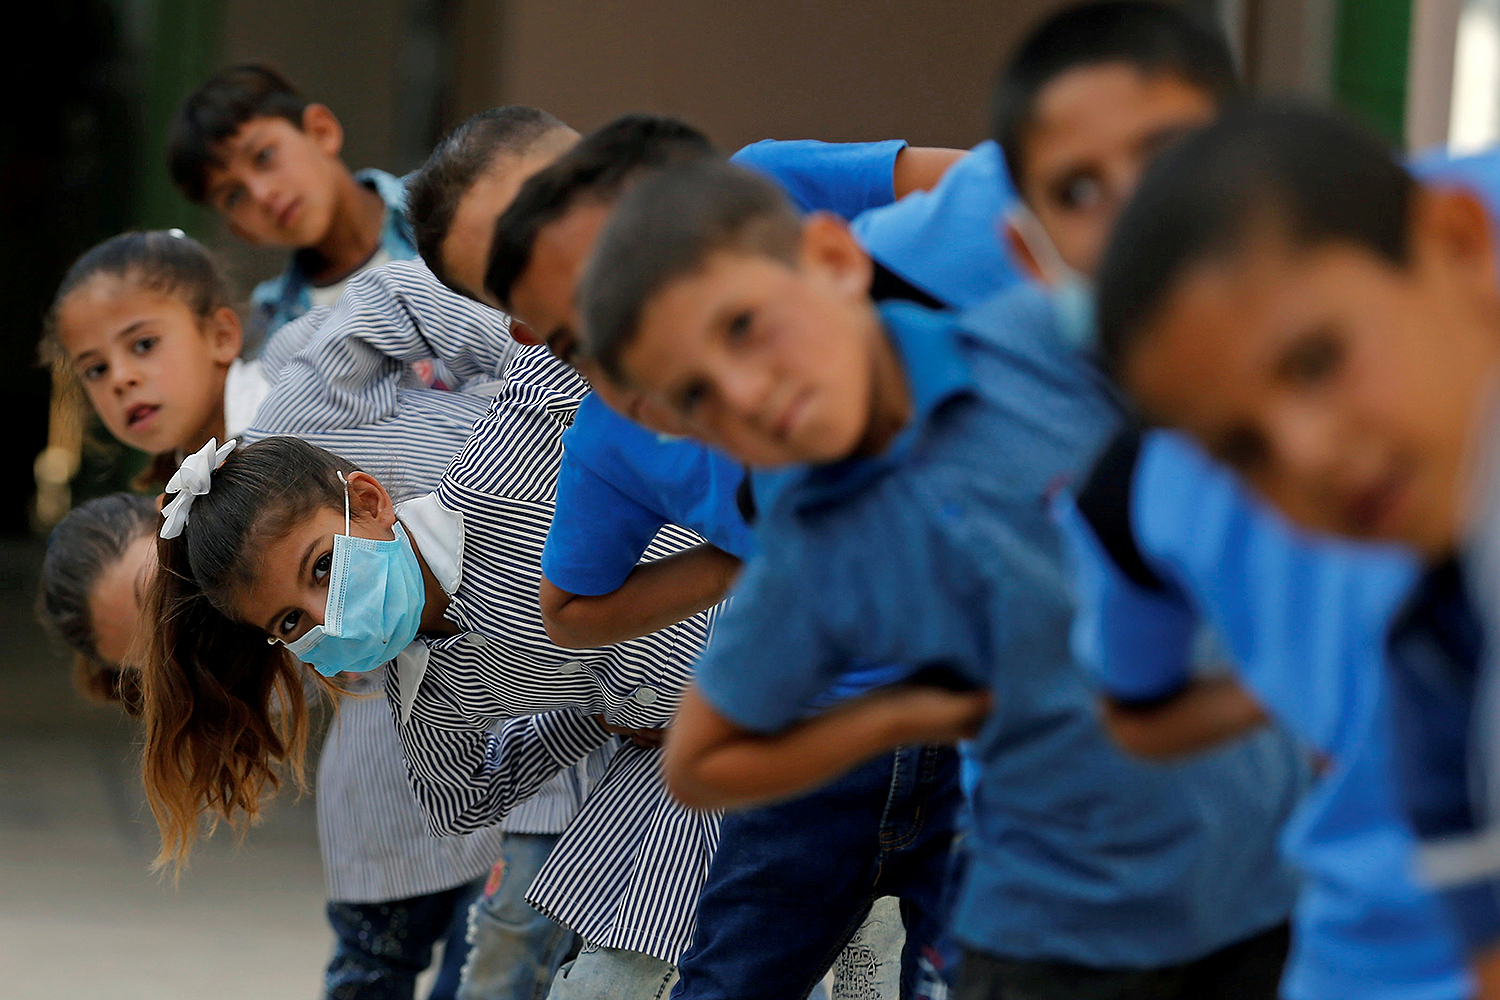 Palestinian students exercise as schools reopen gradually amid the COVID-19 outbreak in the village of Susya in the Israeli-occupied West Bank on Sept. 7. Mussa Qawasma/REUTERS